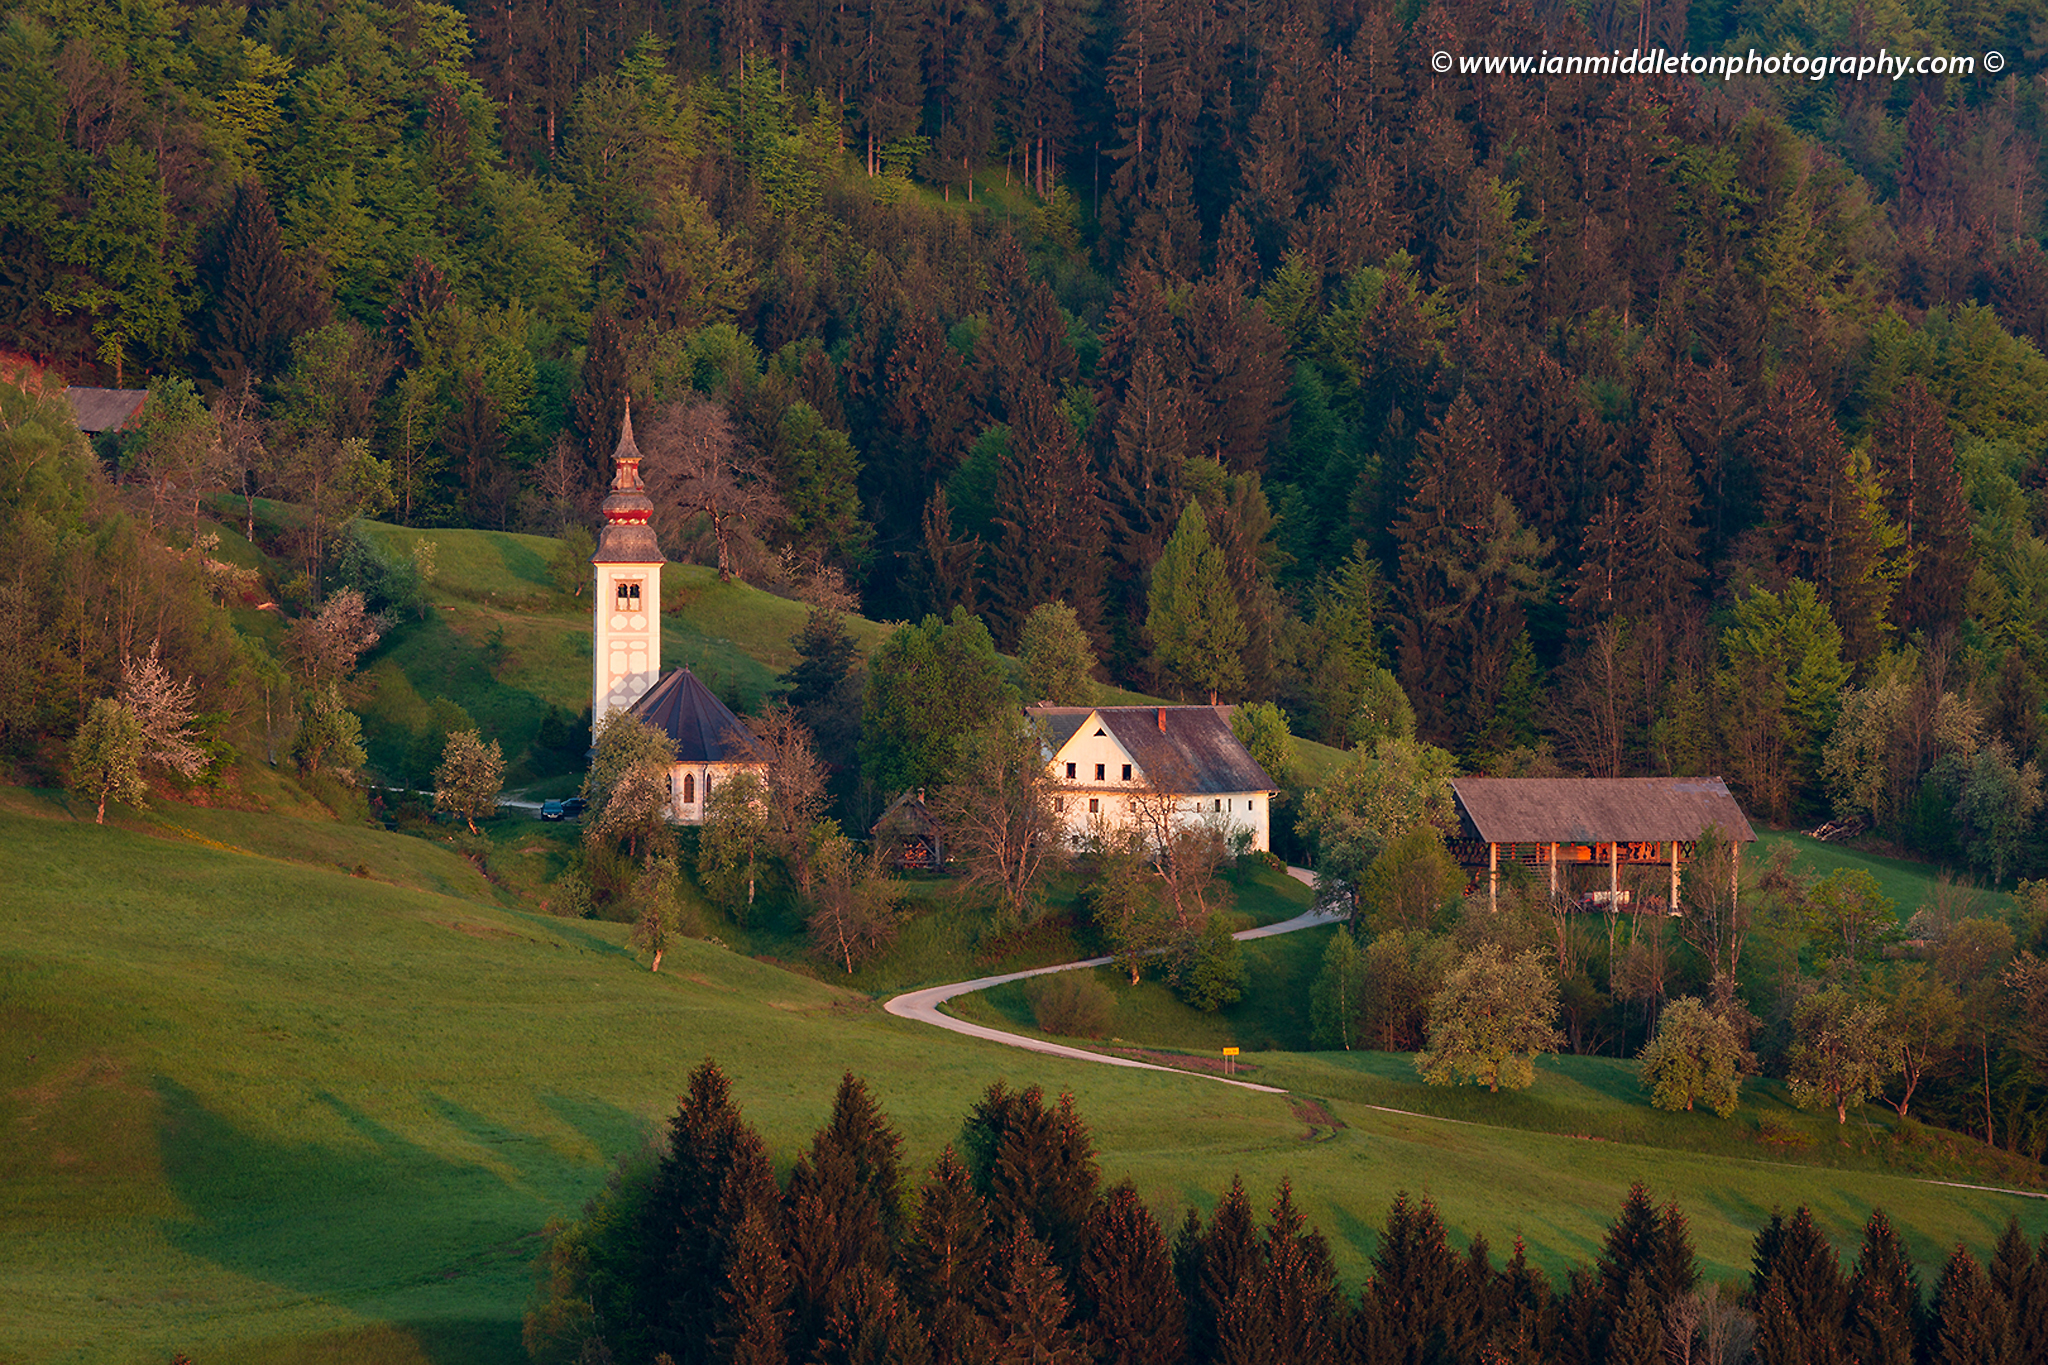 St Valentine church at Jarčje Brdo, seen from Rantovše hill, a small settlement in the Skofja Loka hills, Slovenia.